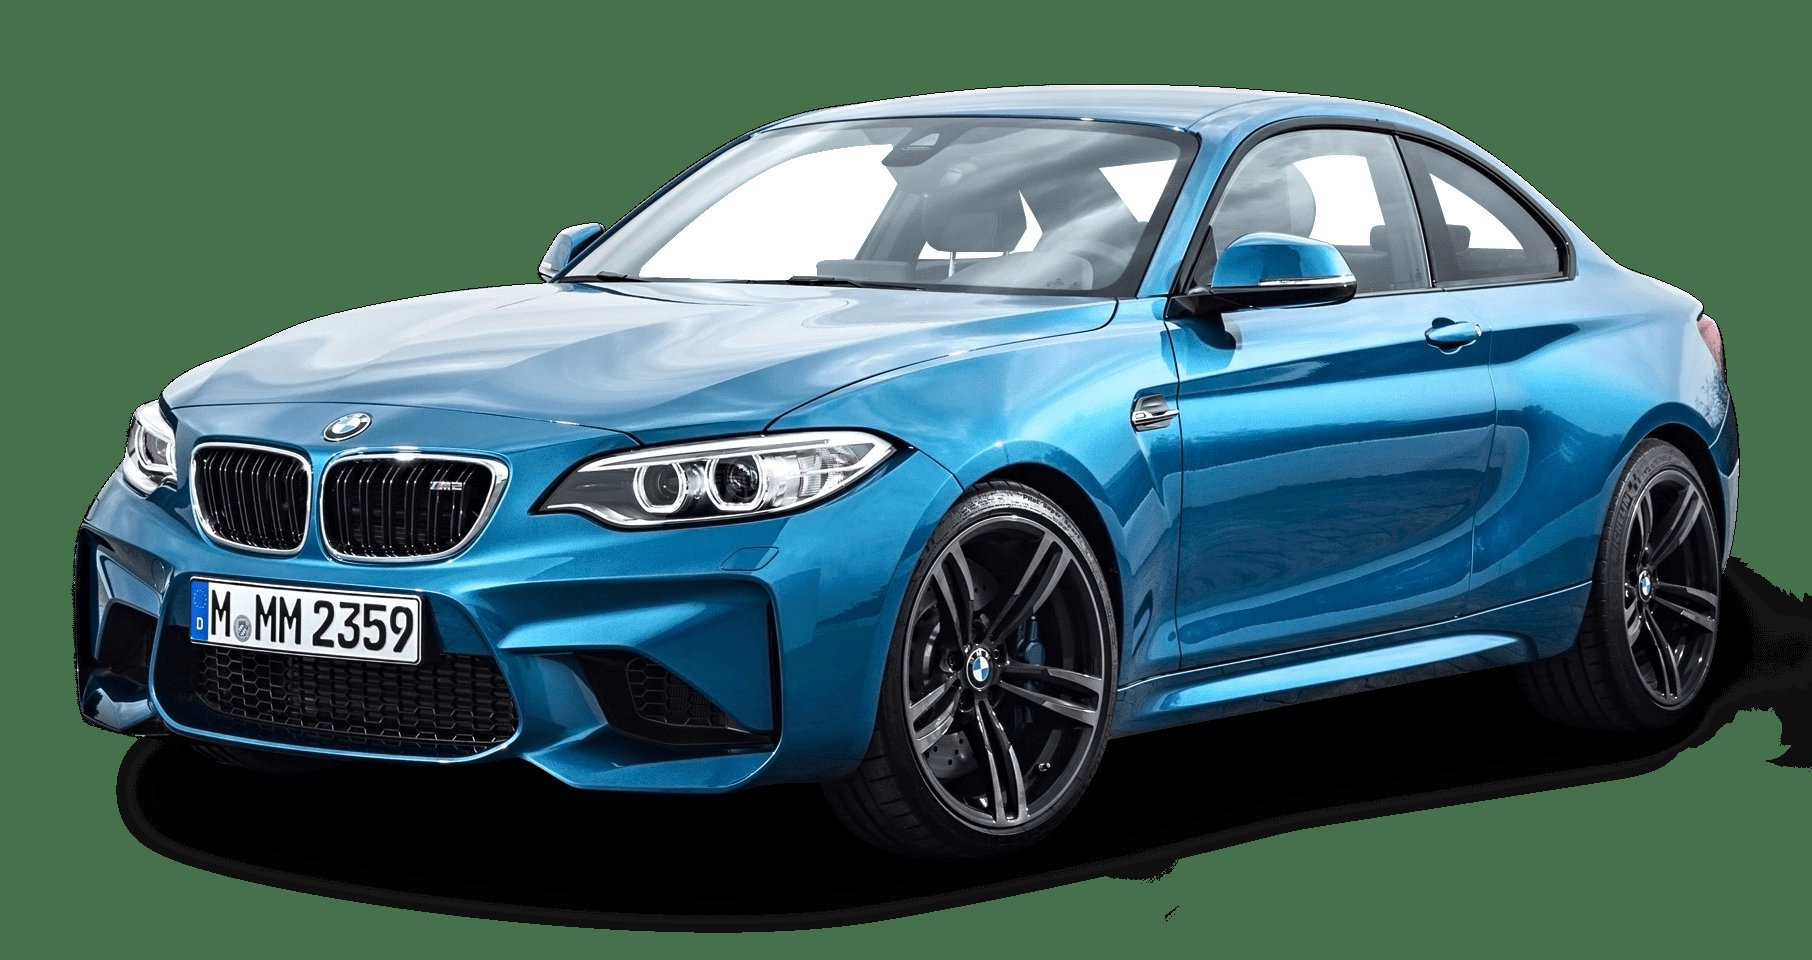 Latest Blue Bmw M2 Coupe Car Png Image Pngpix Free Download